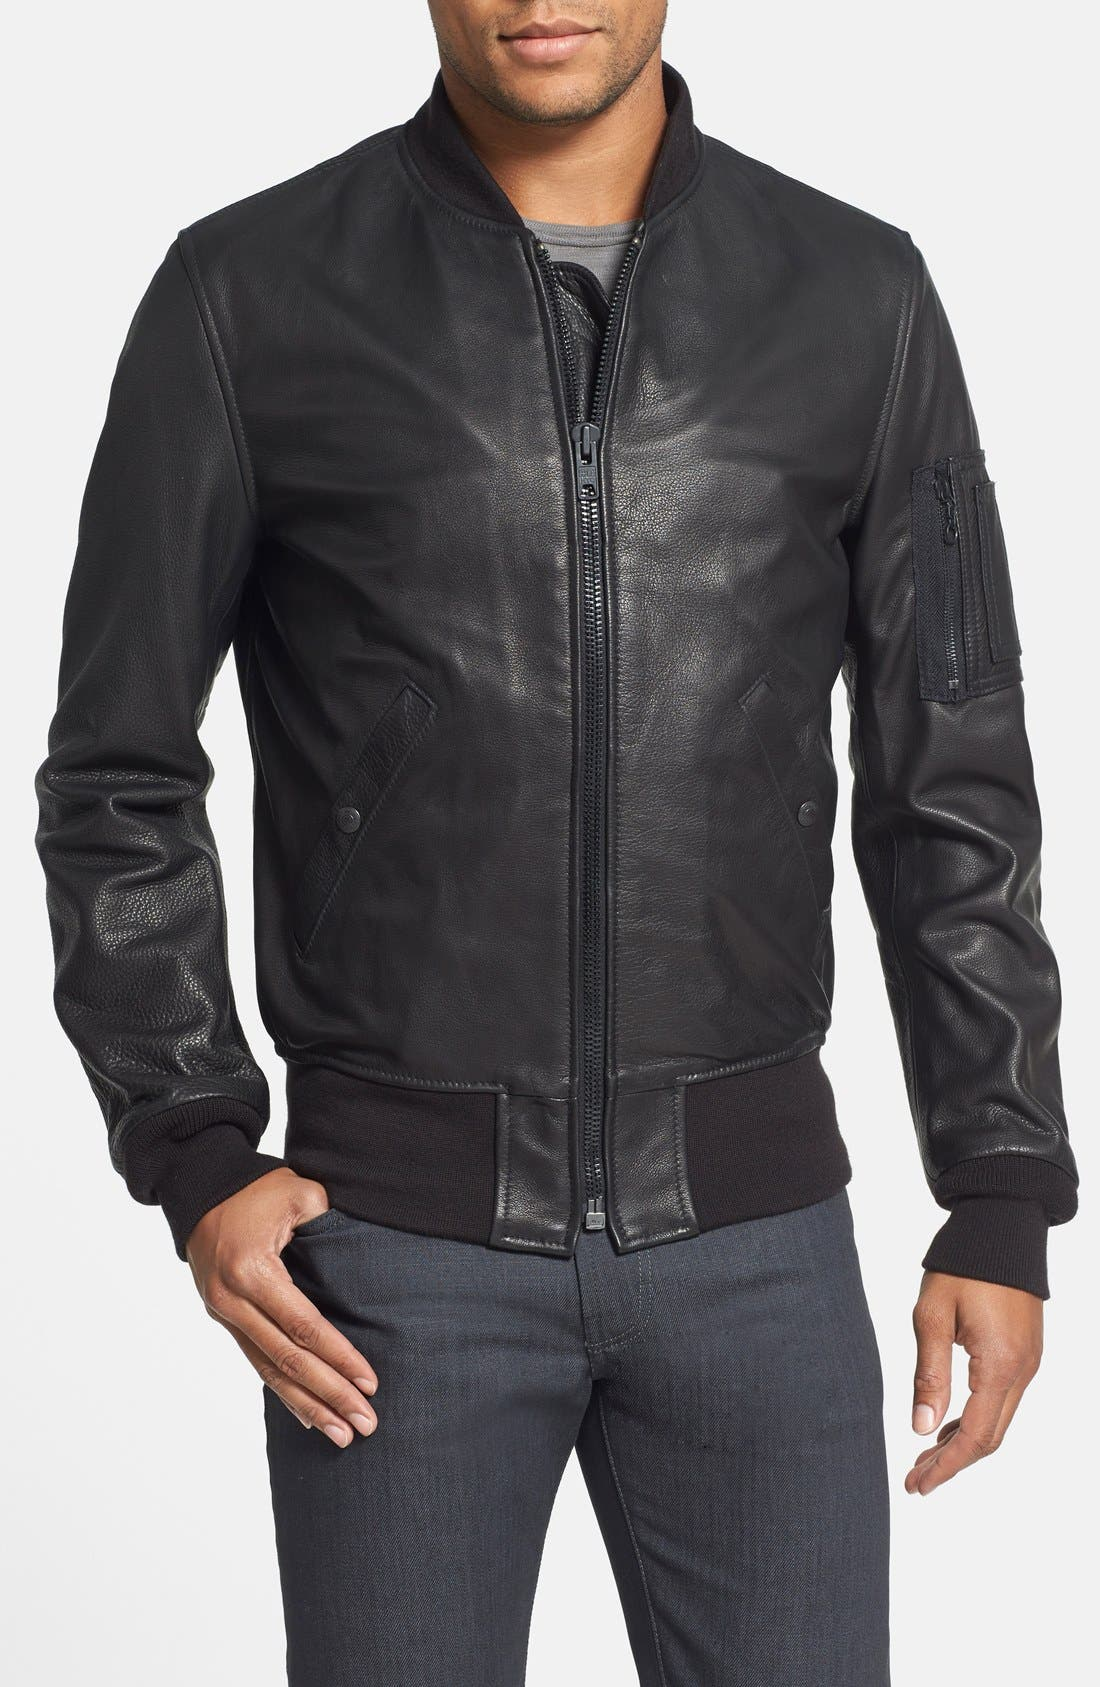 'MA-1' Slim Fit Leather Jacket,                             Main thumbnail 1, color,                             001